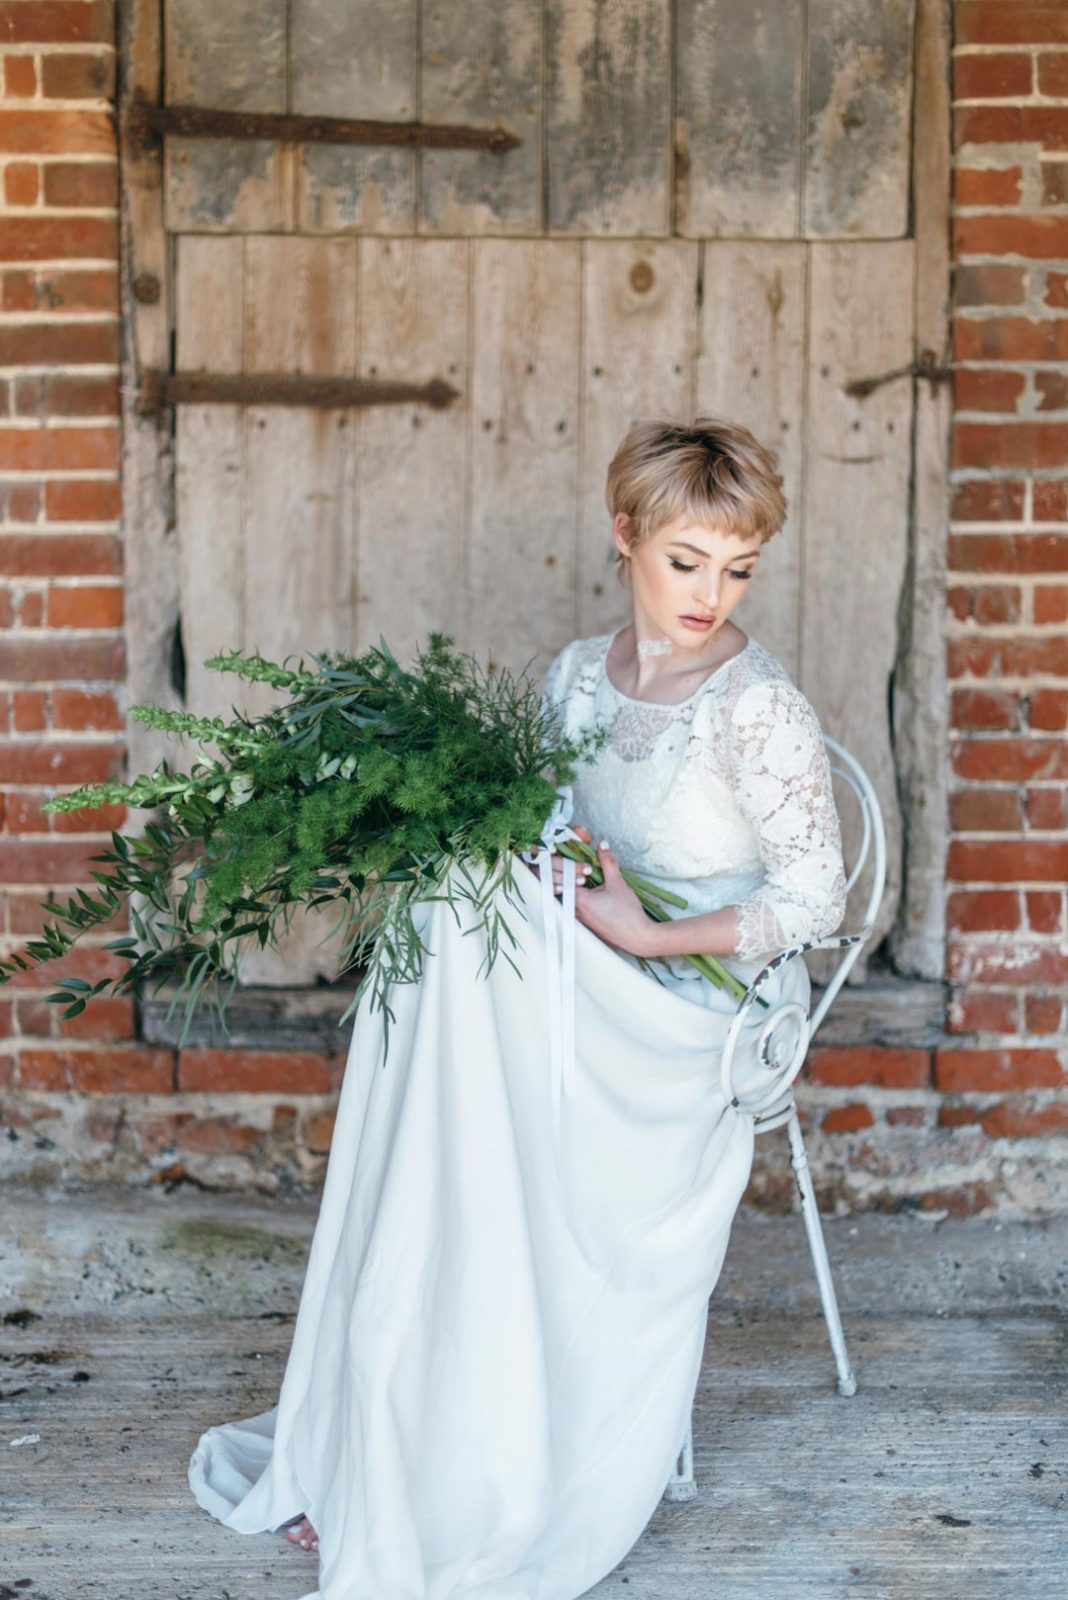 BethMoseleyPhotography_WhiteonWhite-143FINAL1080px wide-48